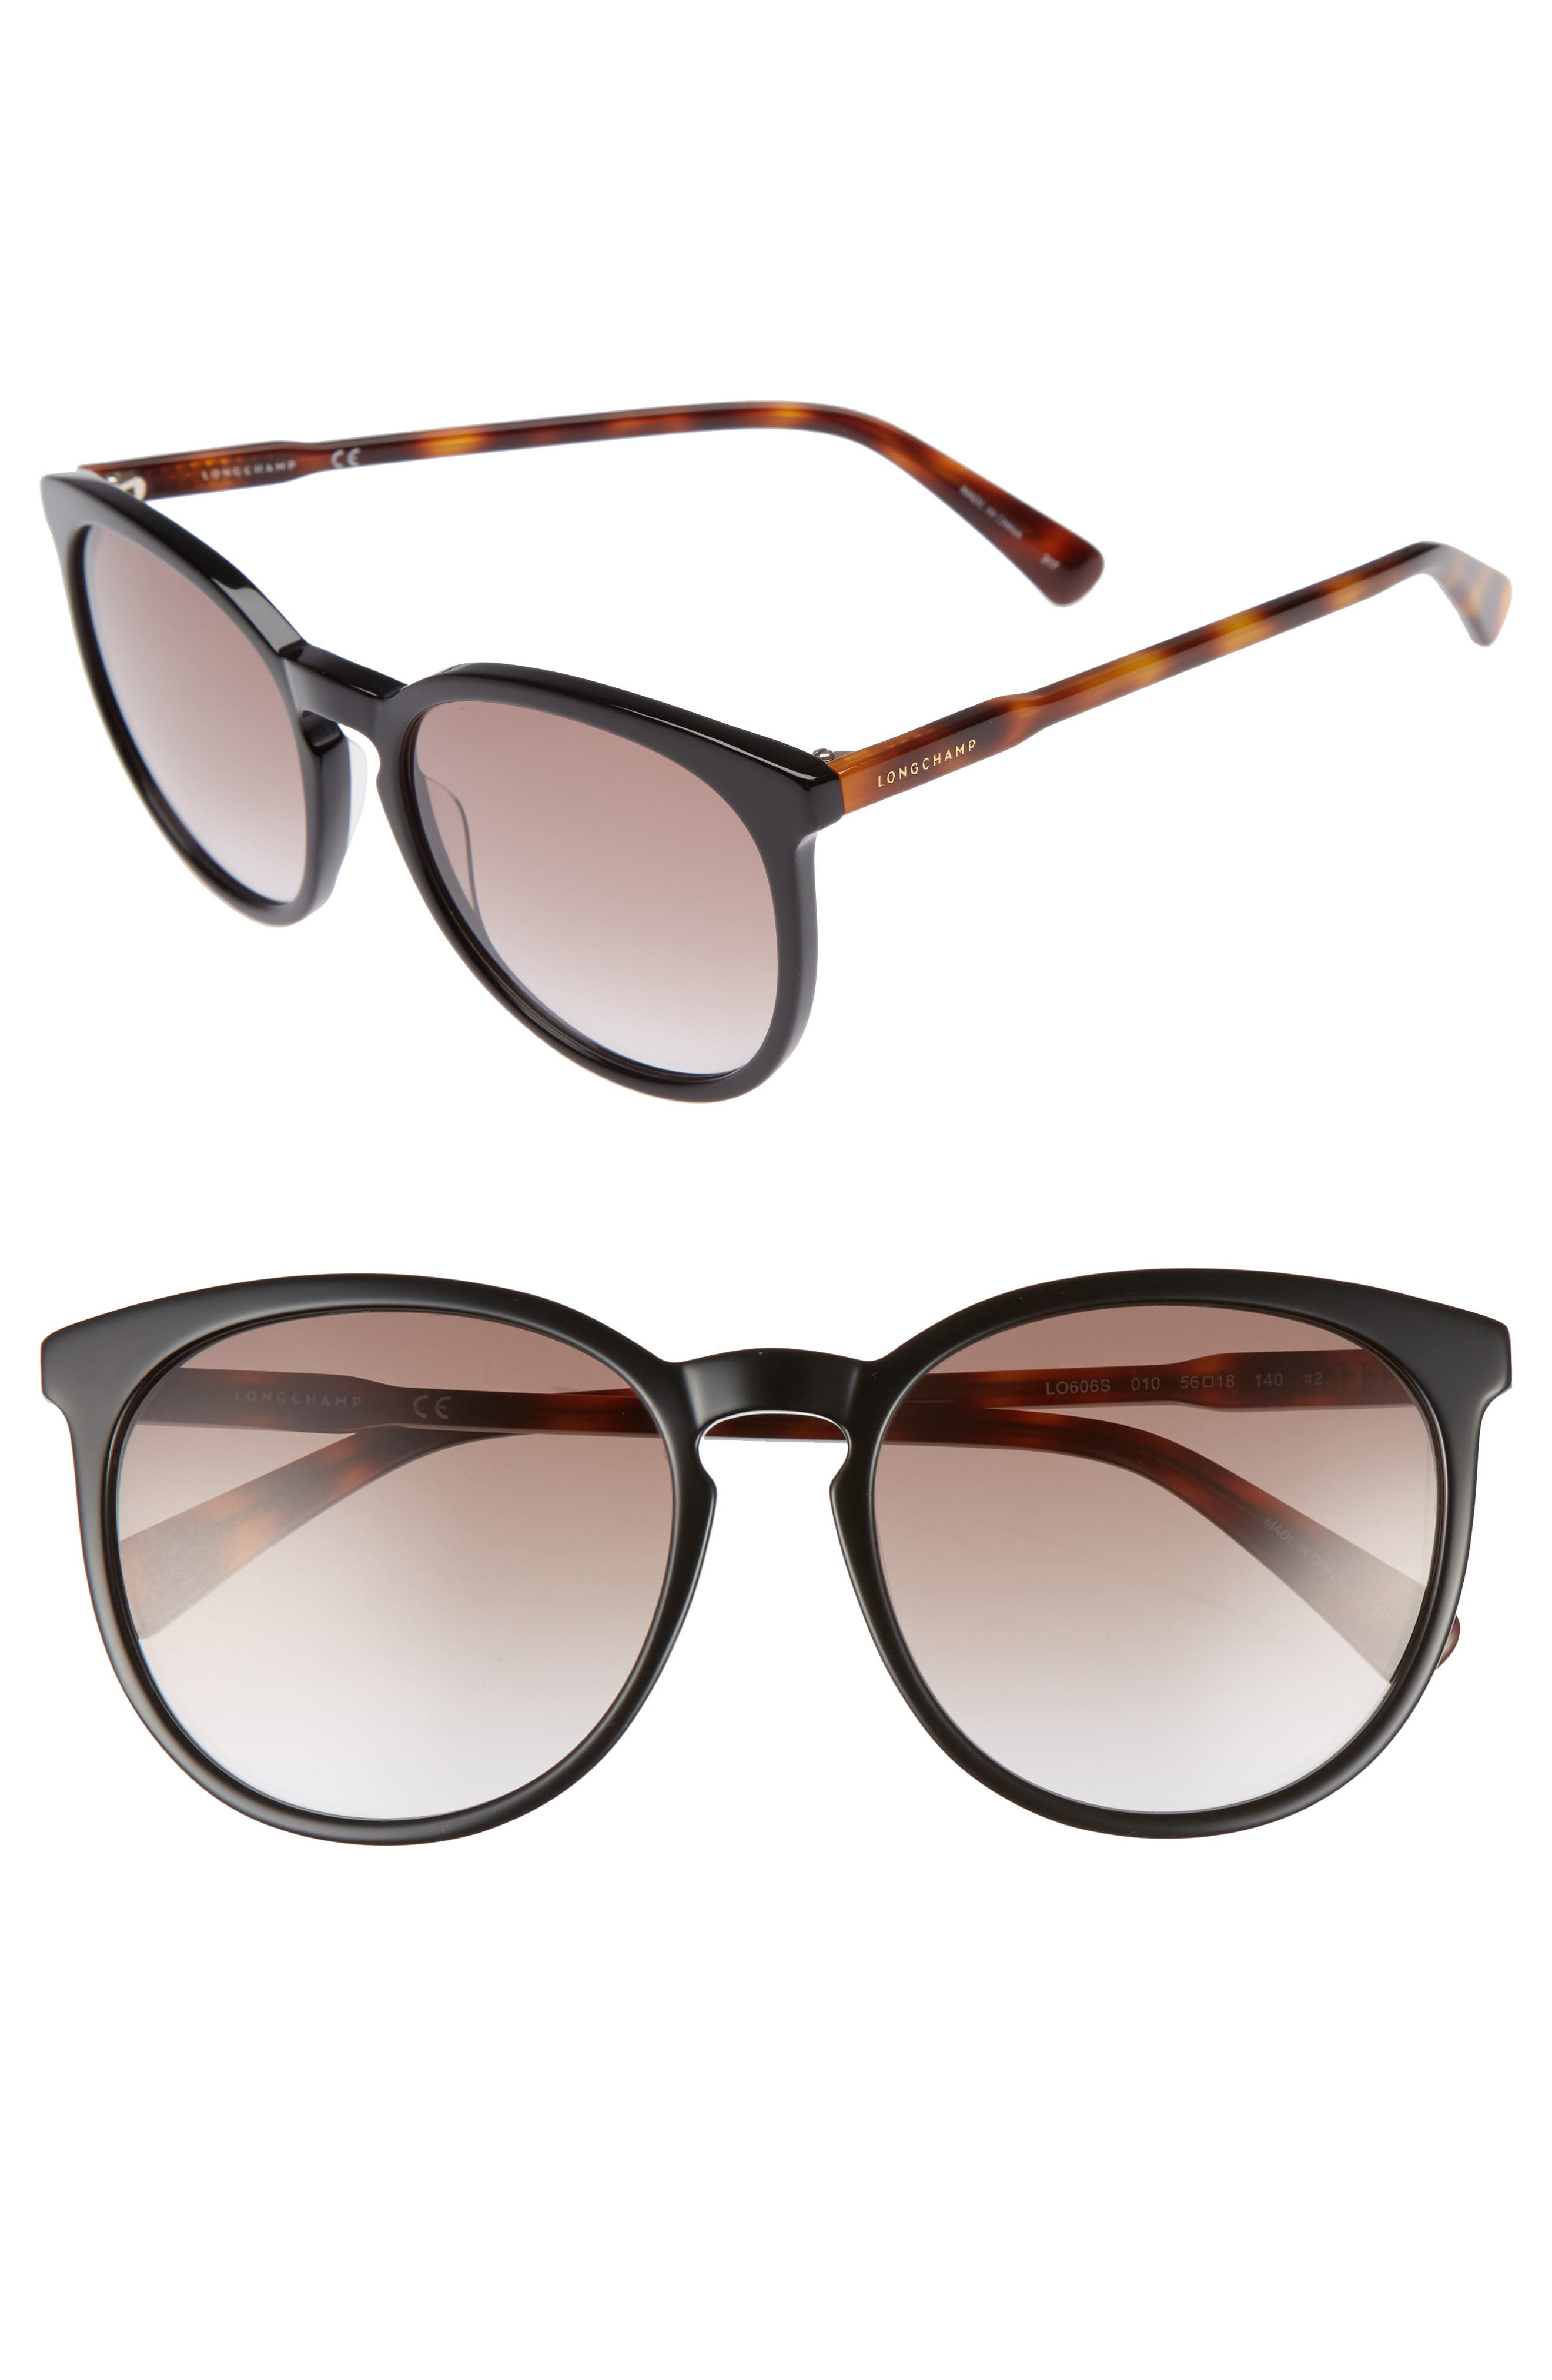 Longchamp 56mm Round Sunglasses